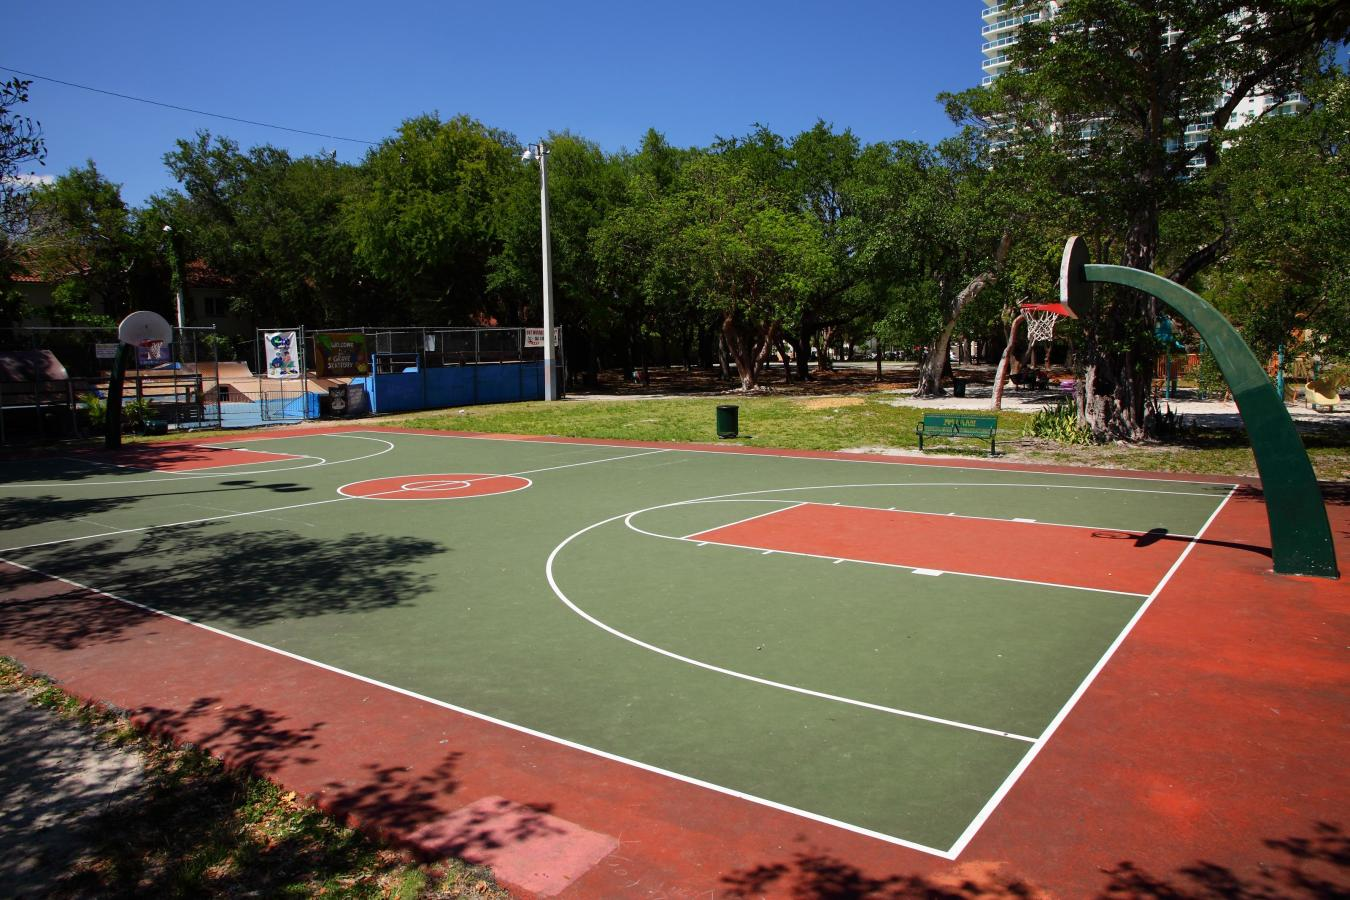 Peacock Park basketball court